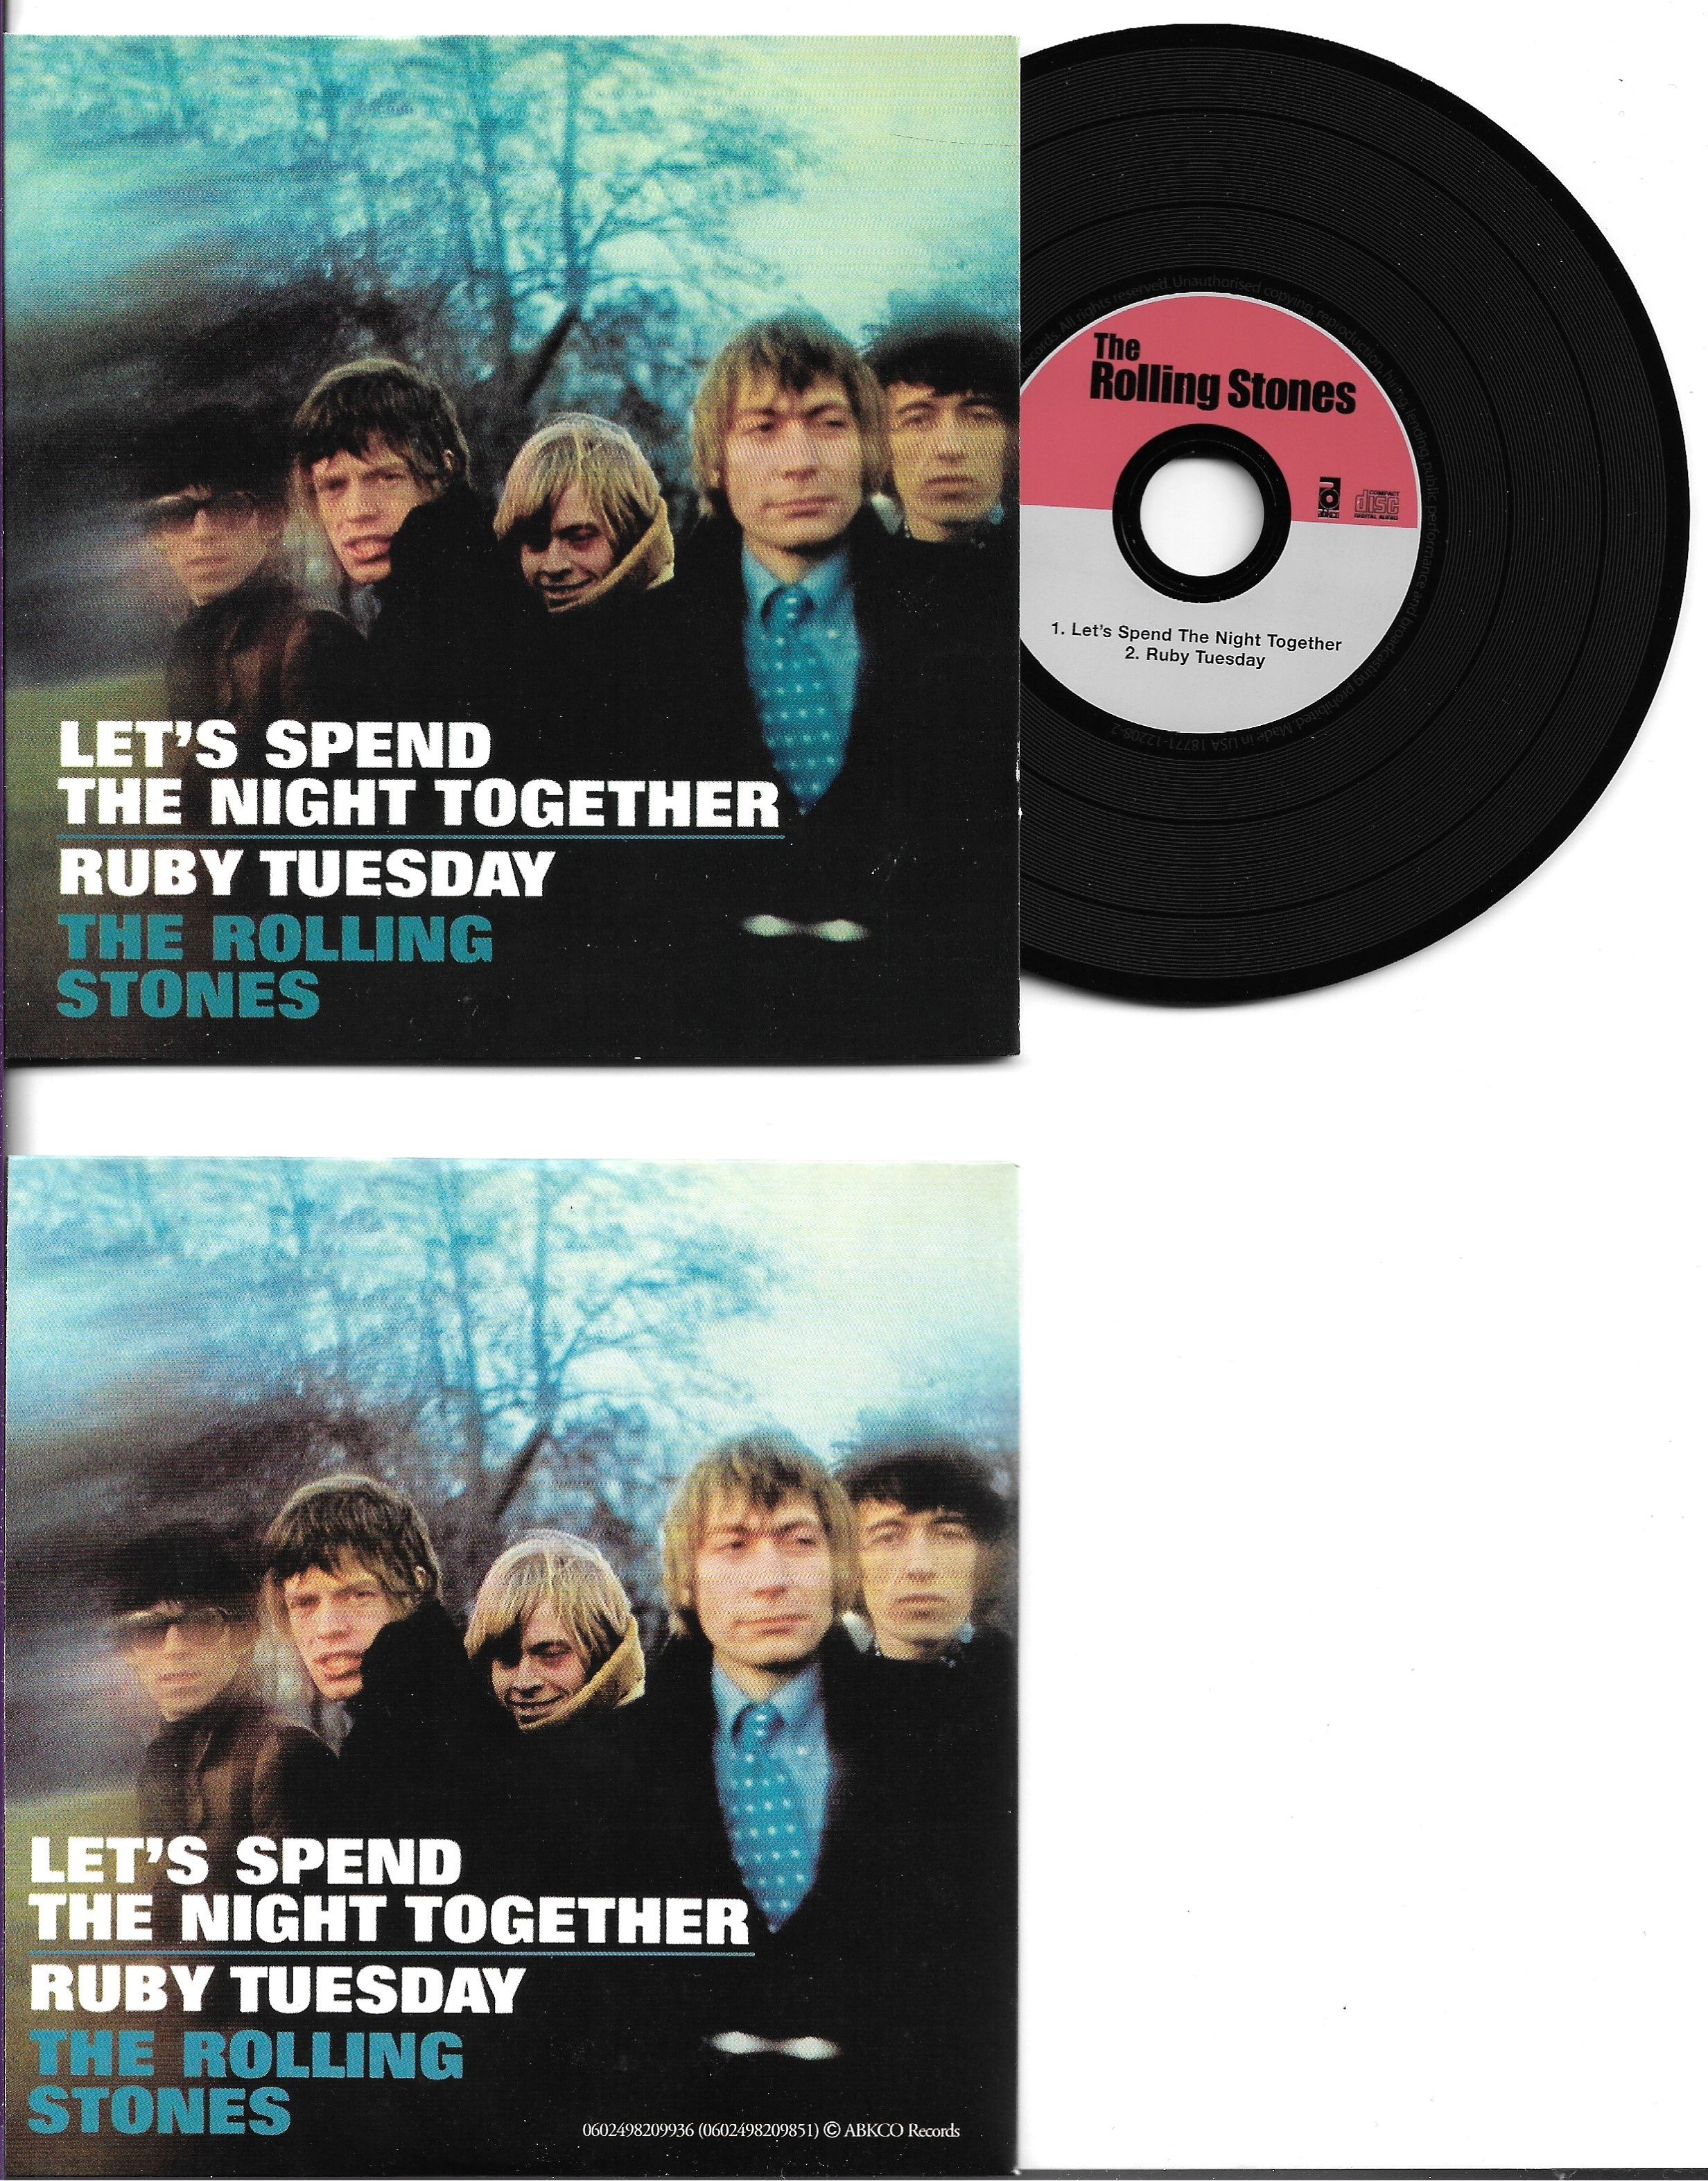 THE ROLLING STONES - Let's spend the night together 2-track CARD SLEEVE - CD single